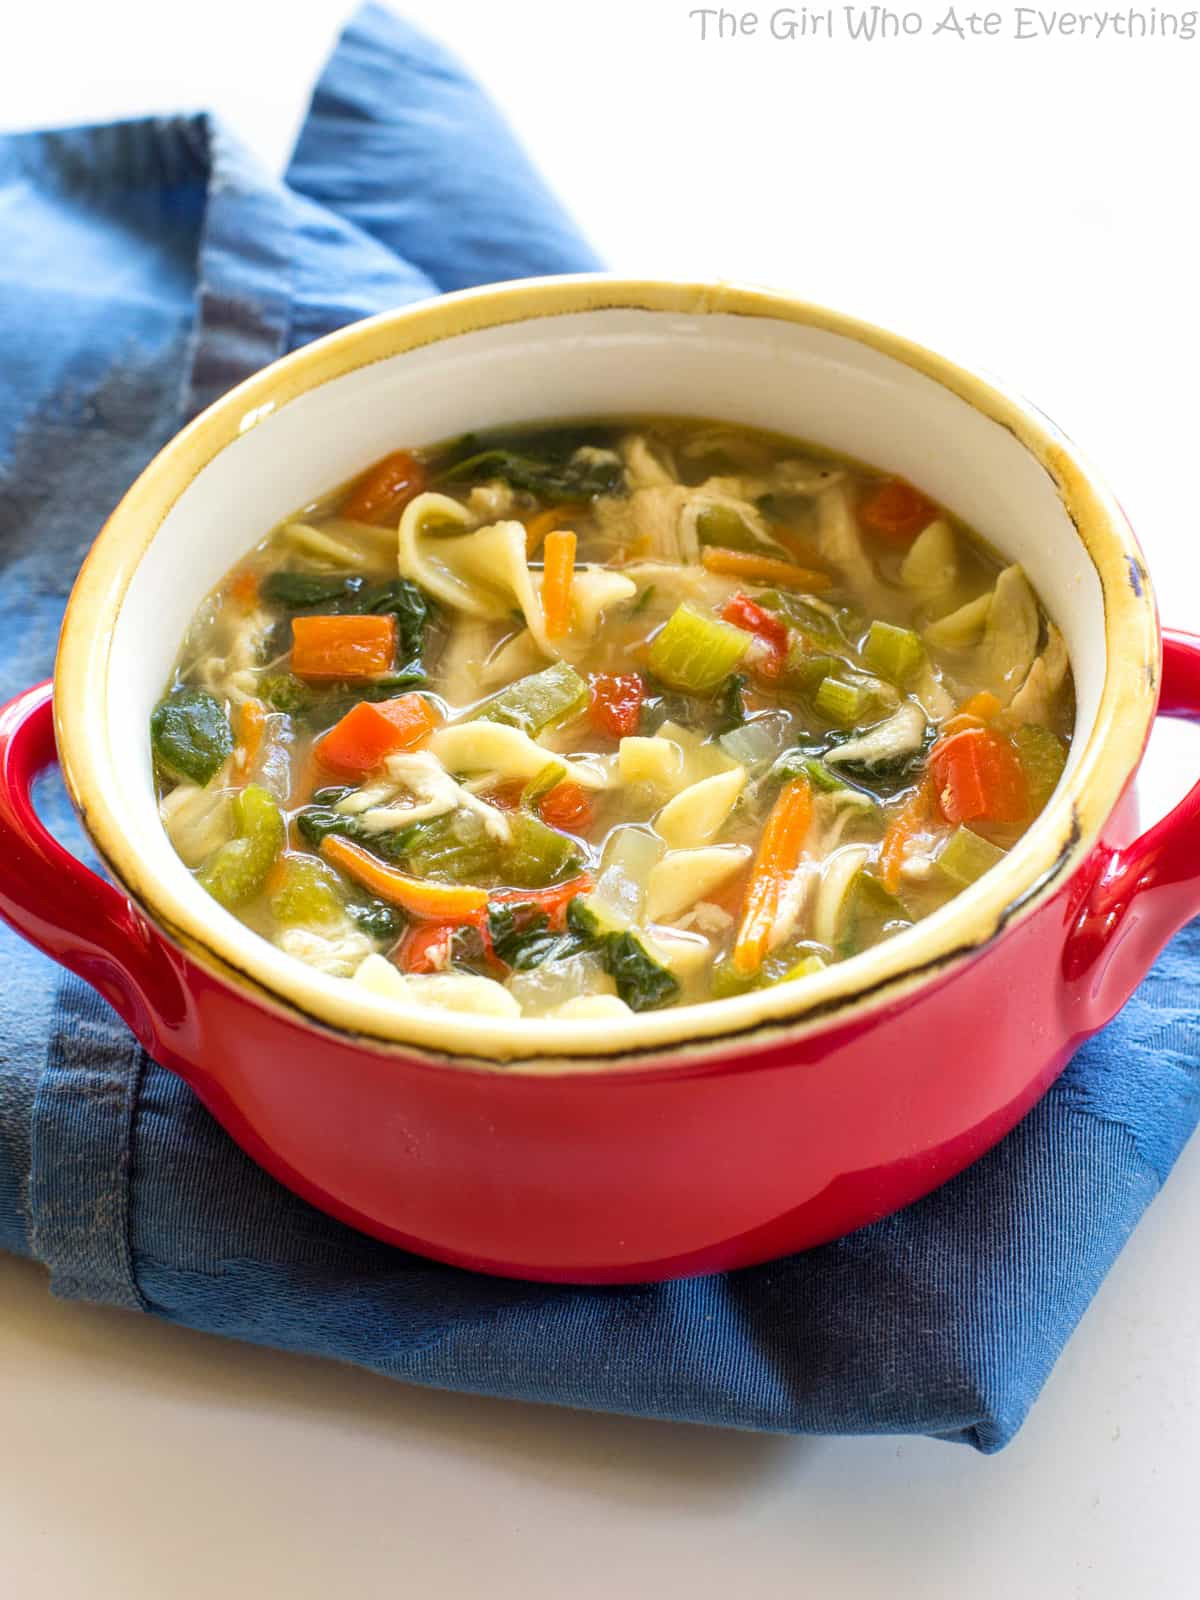 Chicken Soup Healthy  Healthy Ve able Chicken Soup The Girl Who Ate Everything